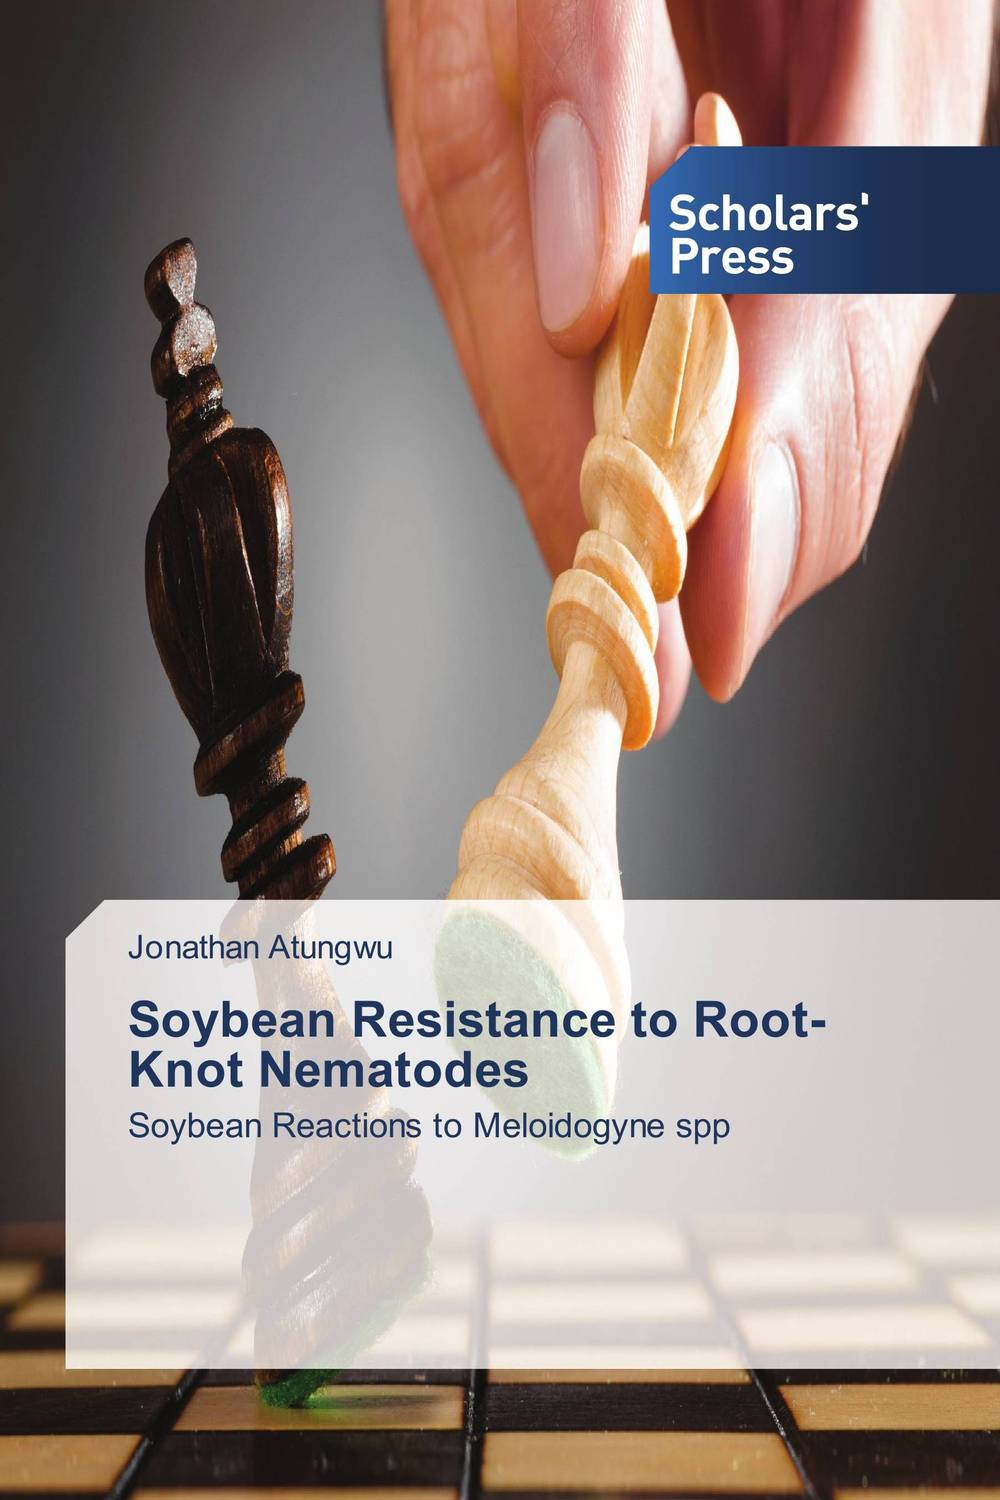 Soybean Resistance to Root-Knot Nematodes the teeth with root canal students to practice root canal preparation and filling actually